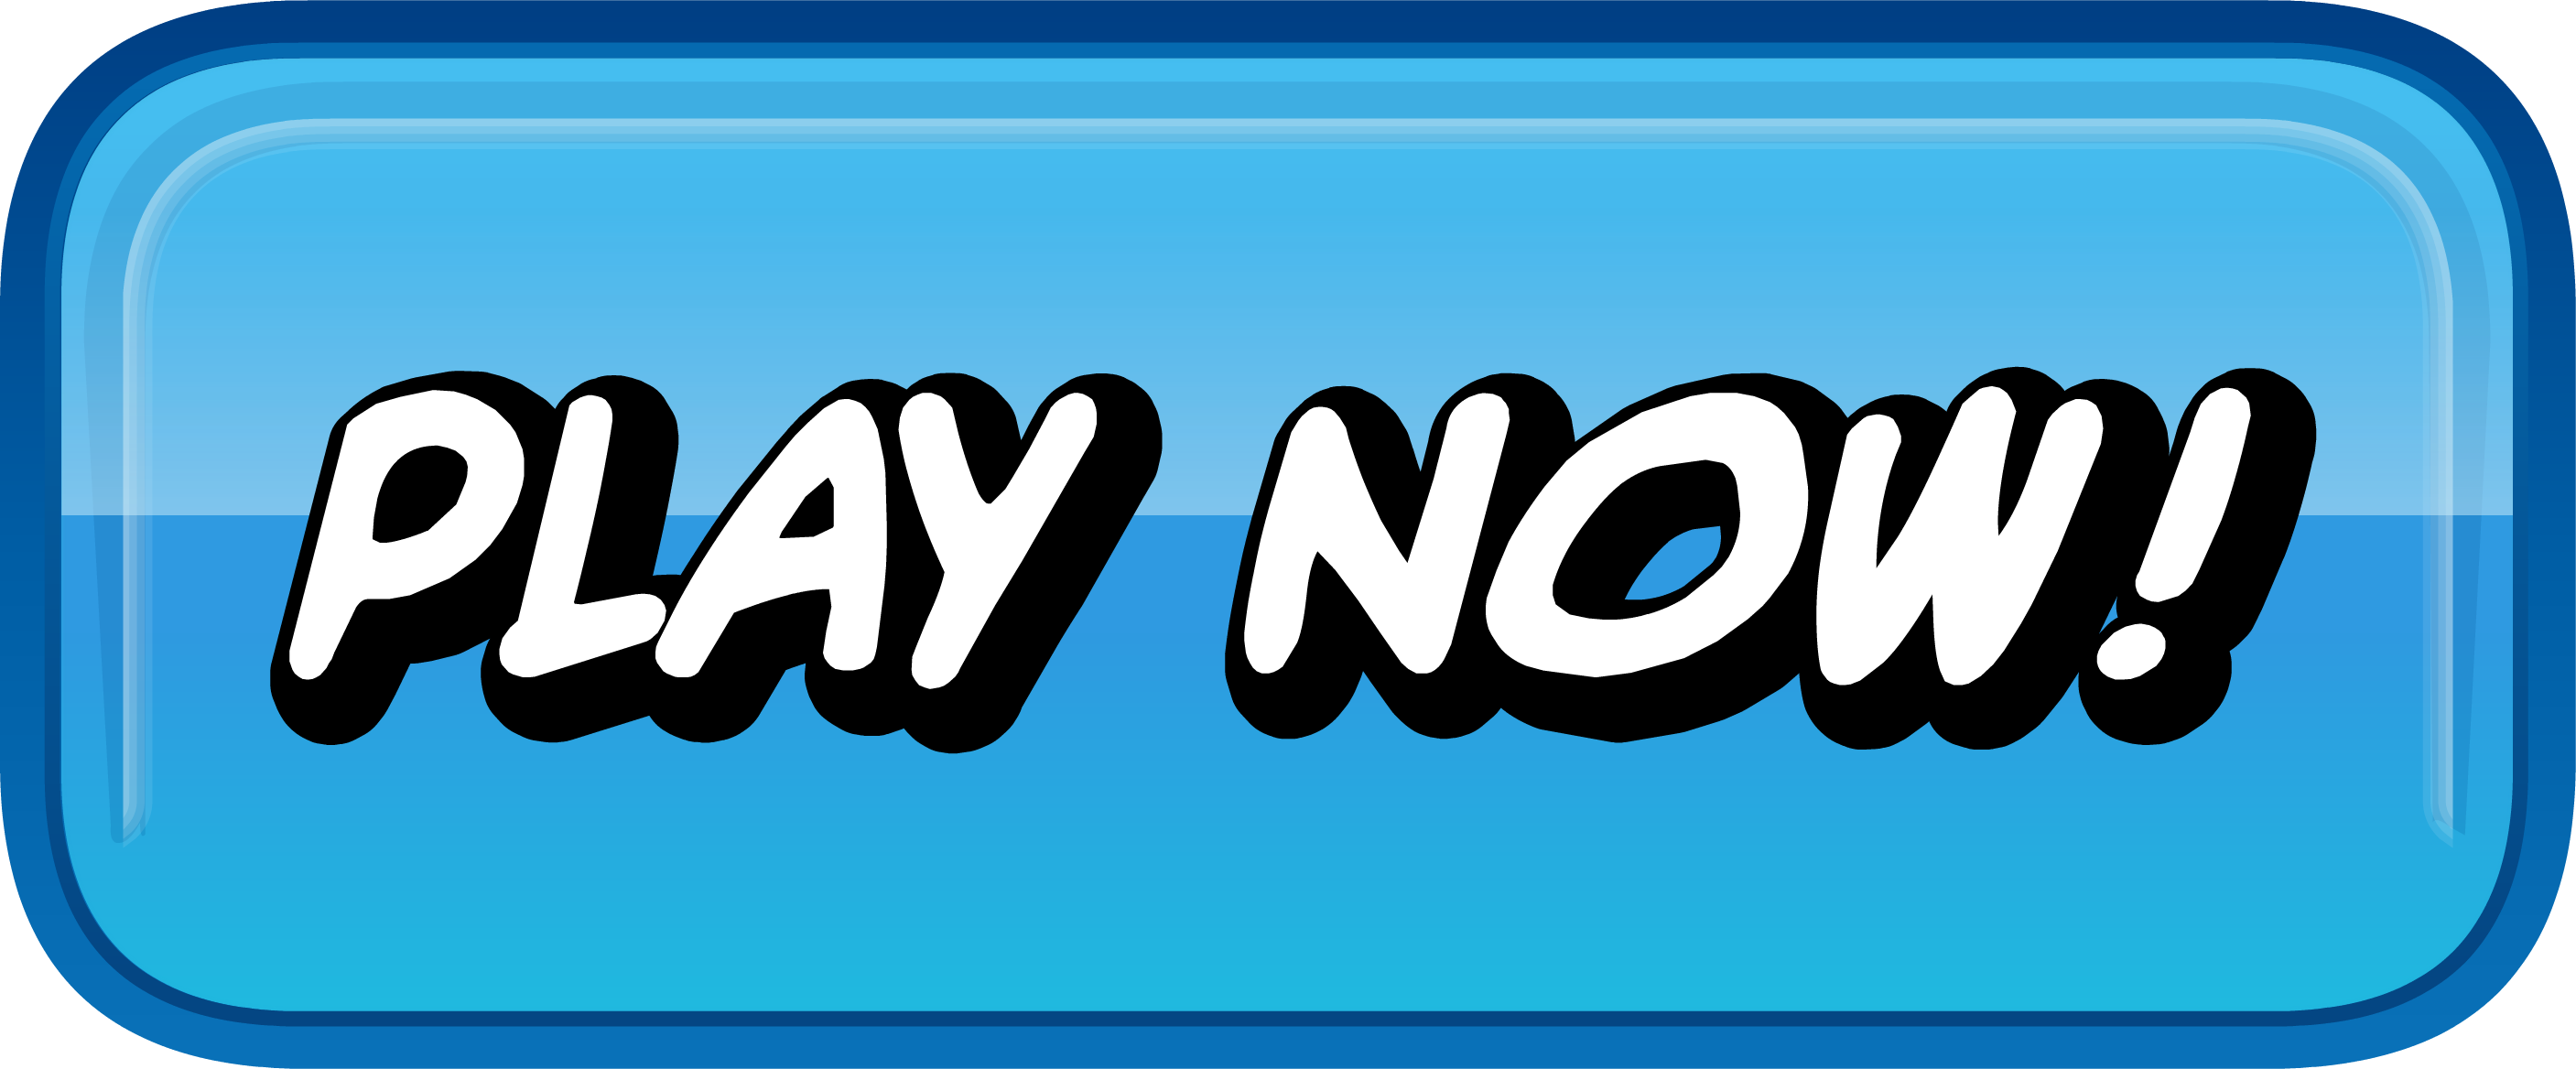 Fast Money Casino Slot Online | PLAY NOW